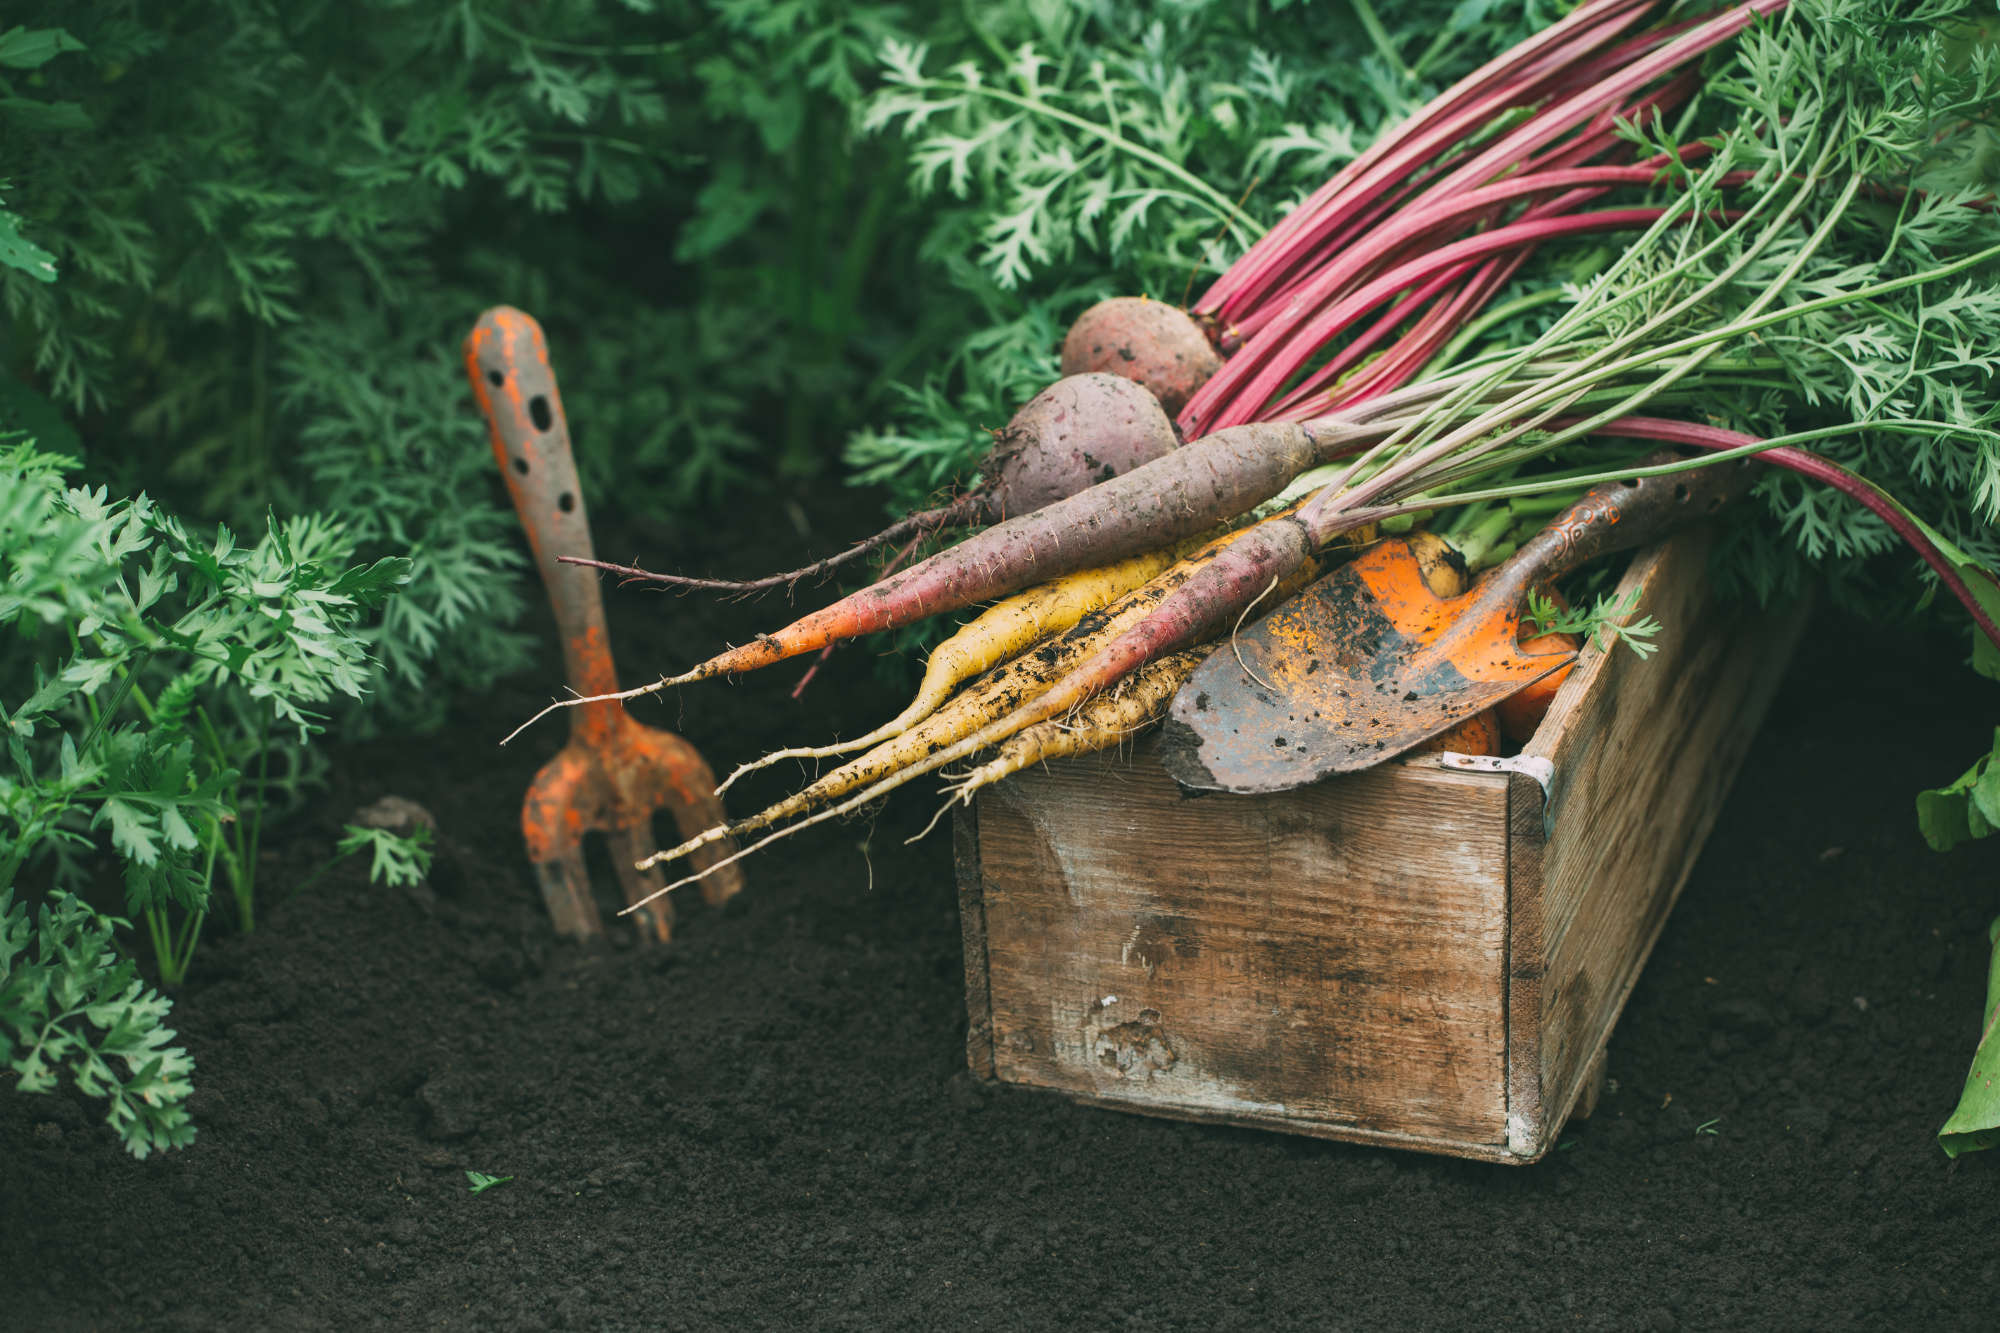 Harvest beets and carrots. Farm vegetables. Healthy food